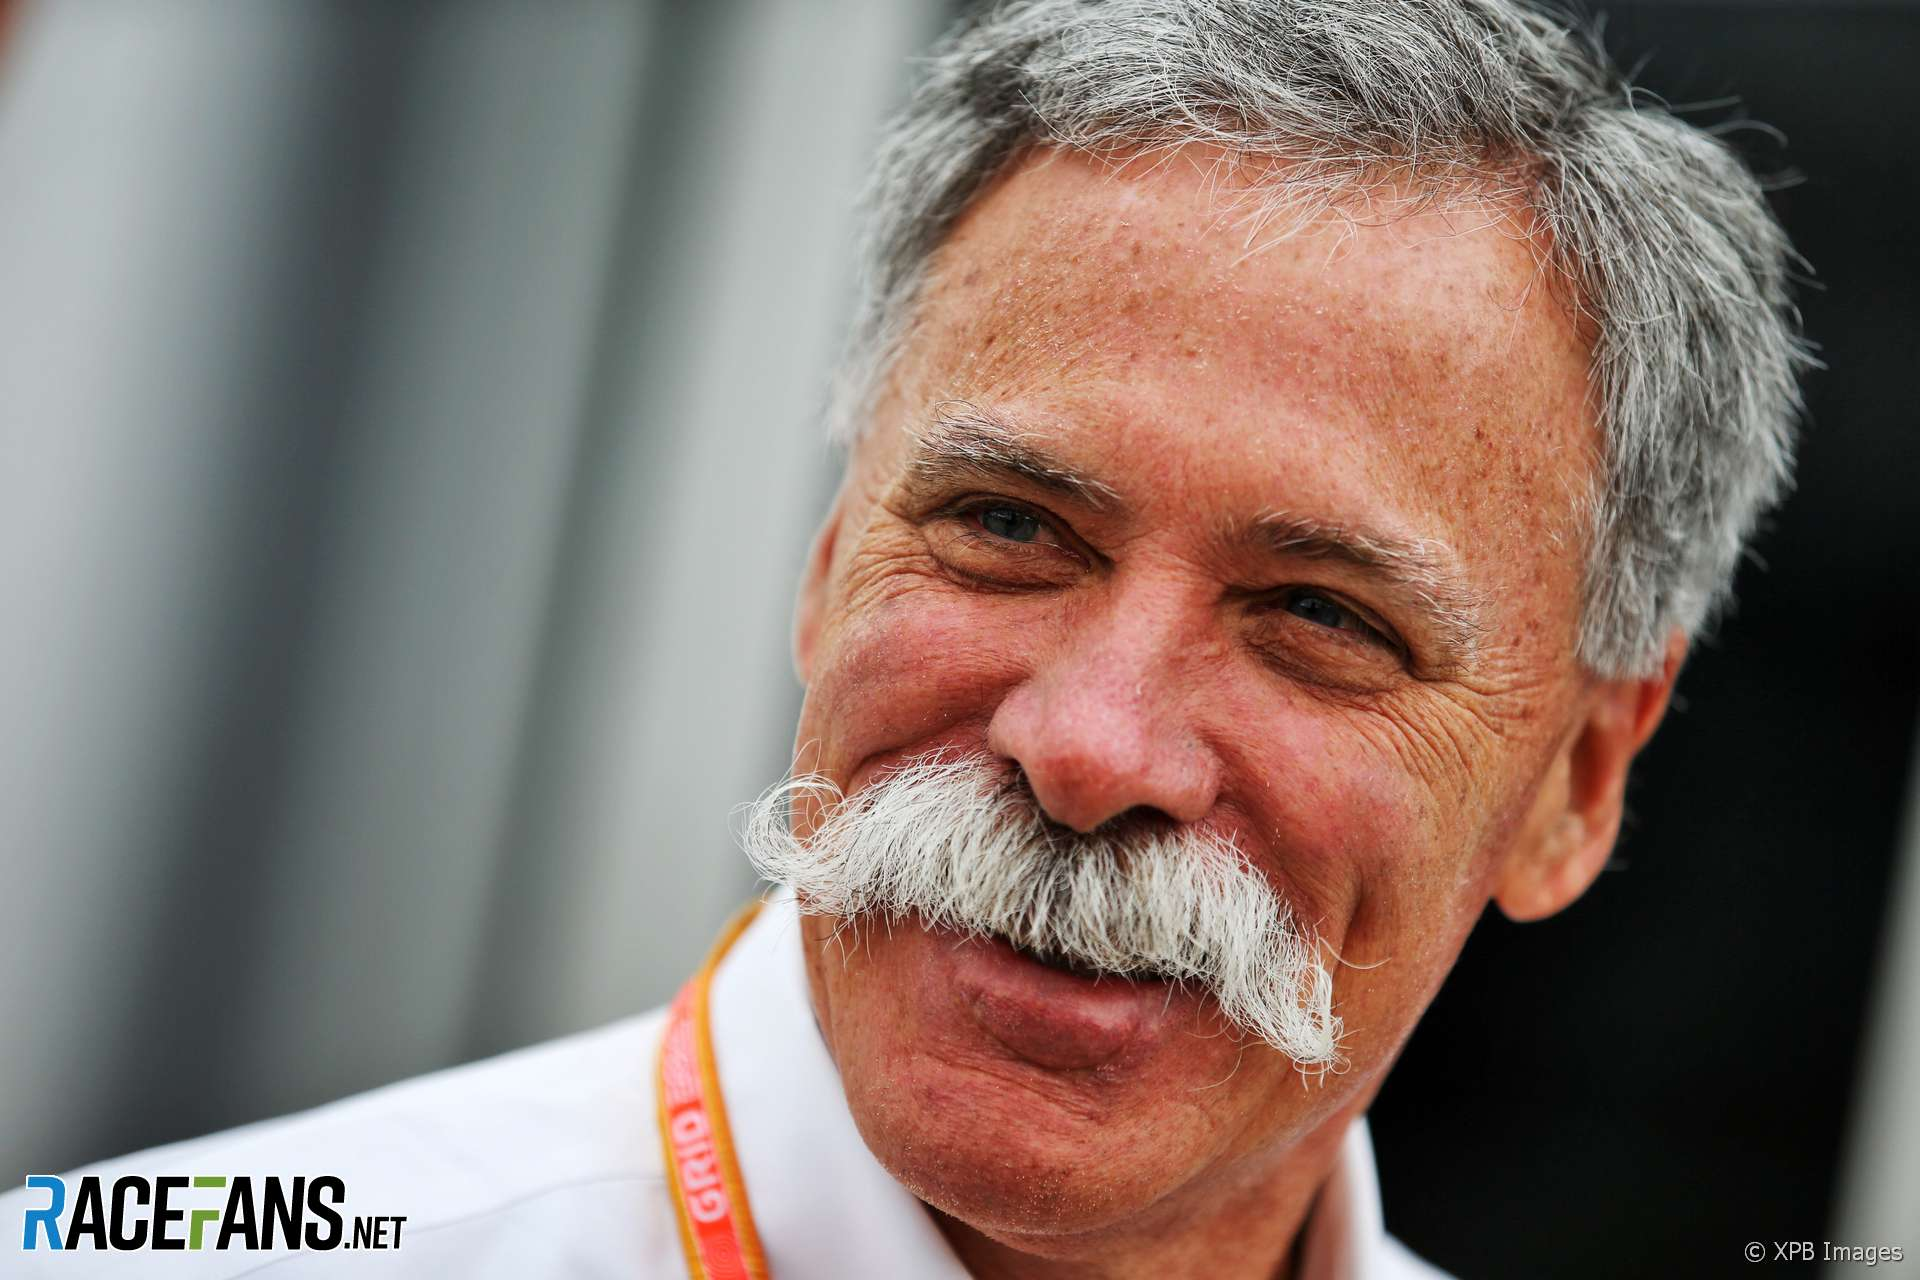 What Carey's latest take on the state of Formula 1 told us